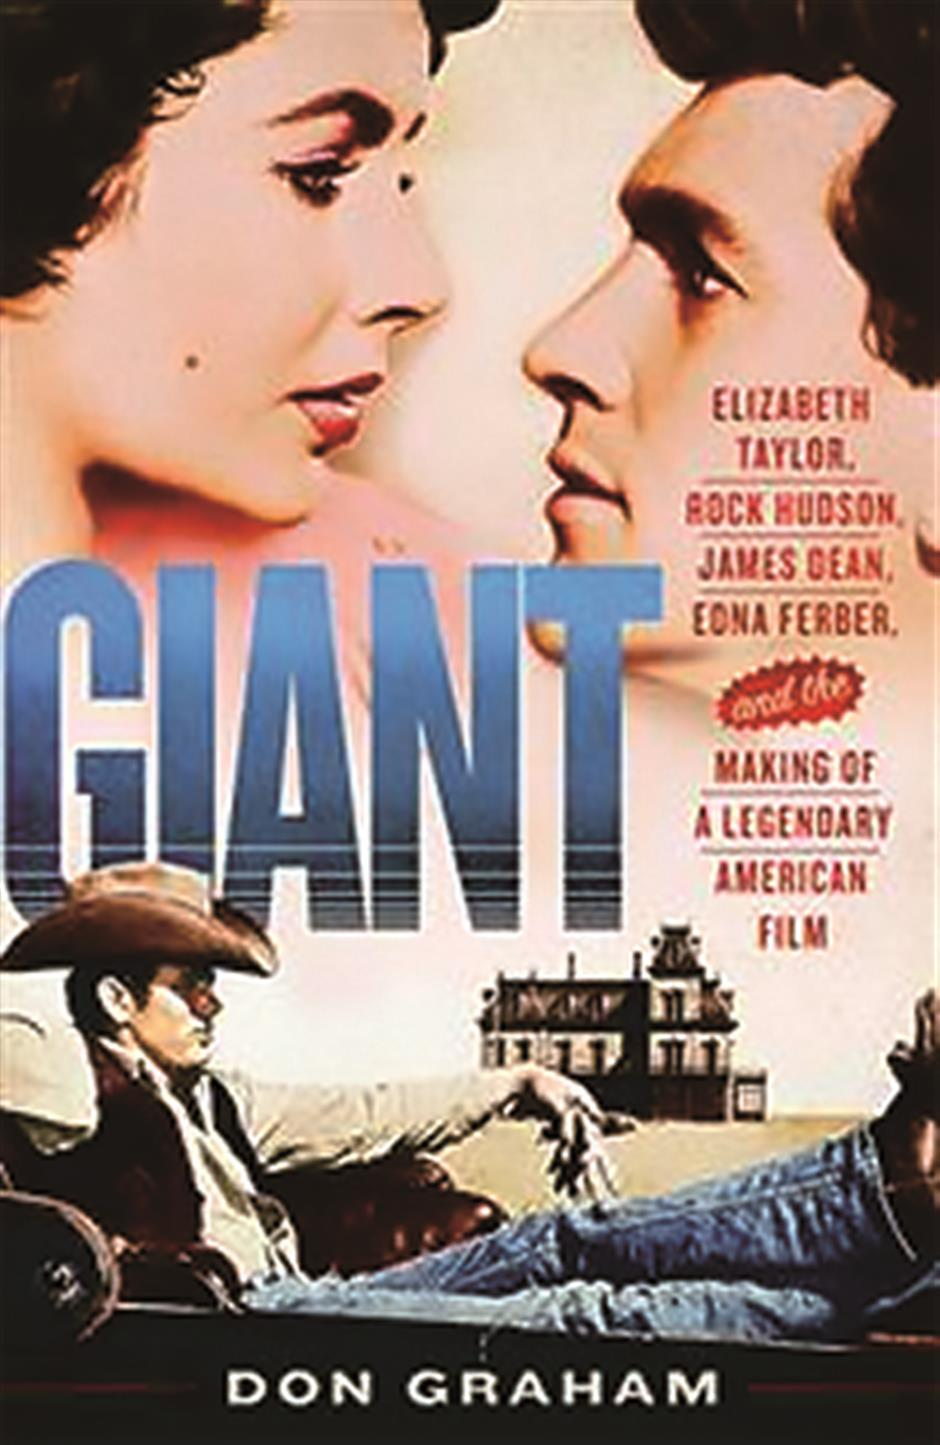 Giant exposes 1950s Hollywood